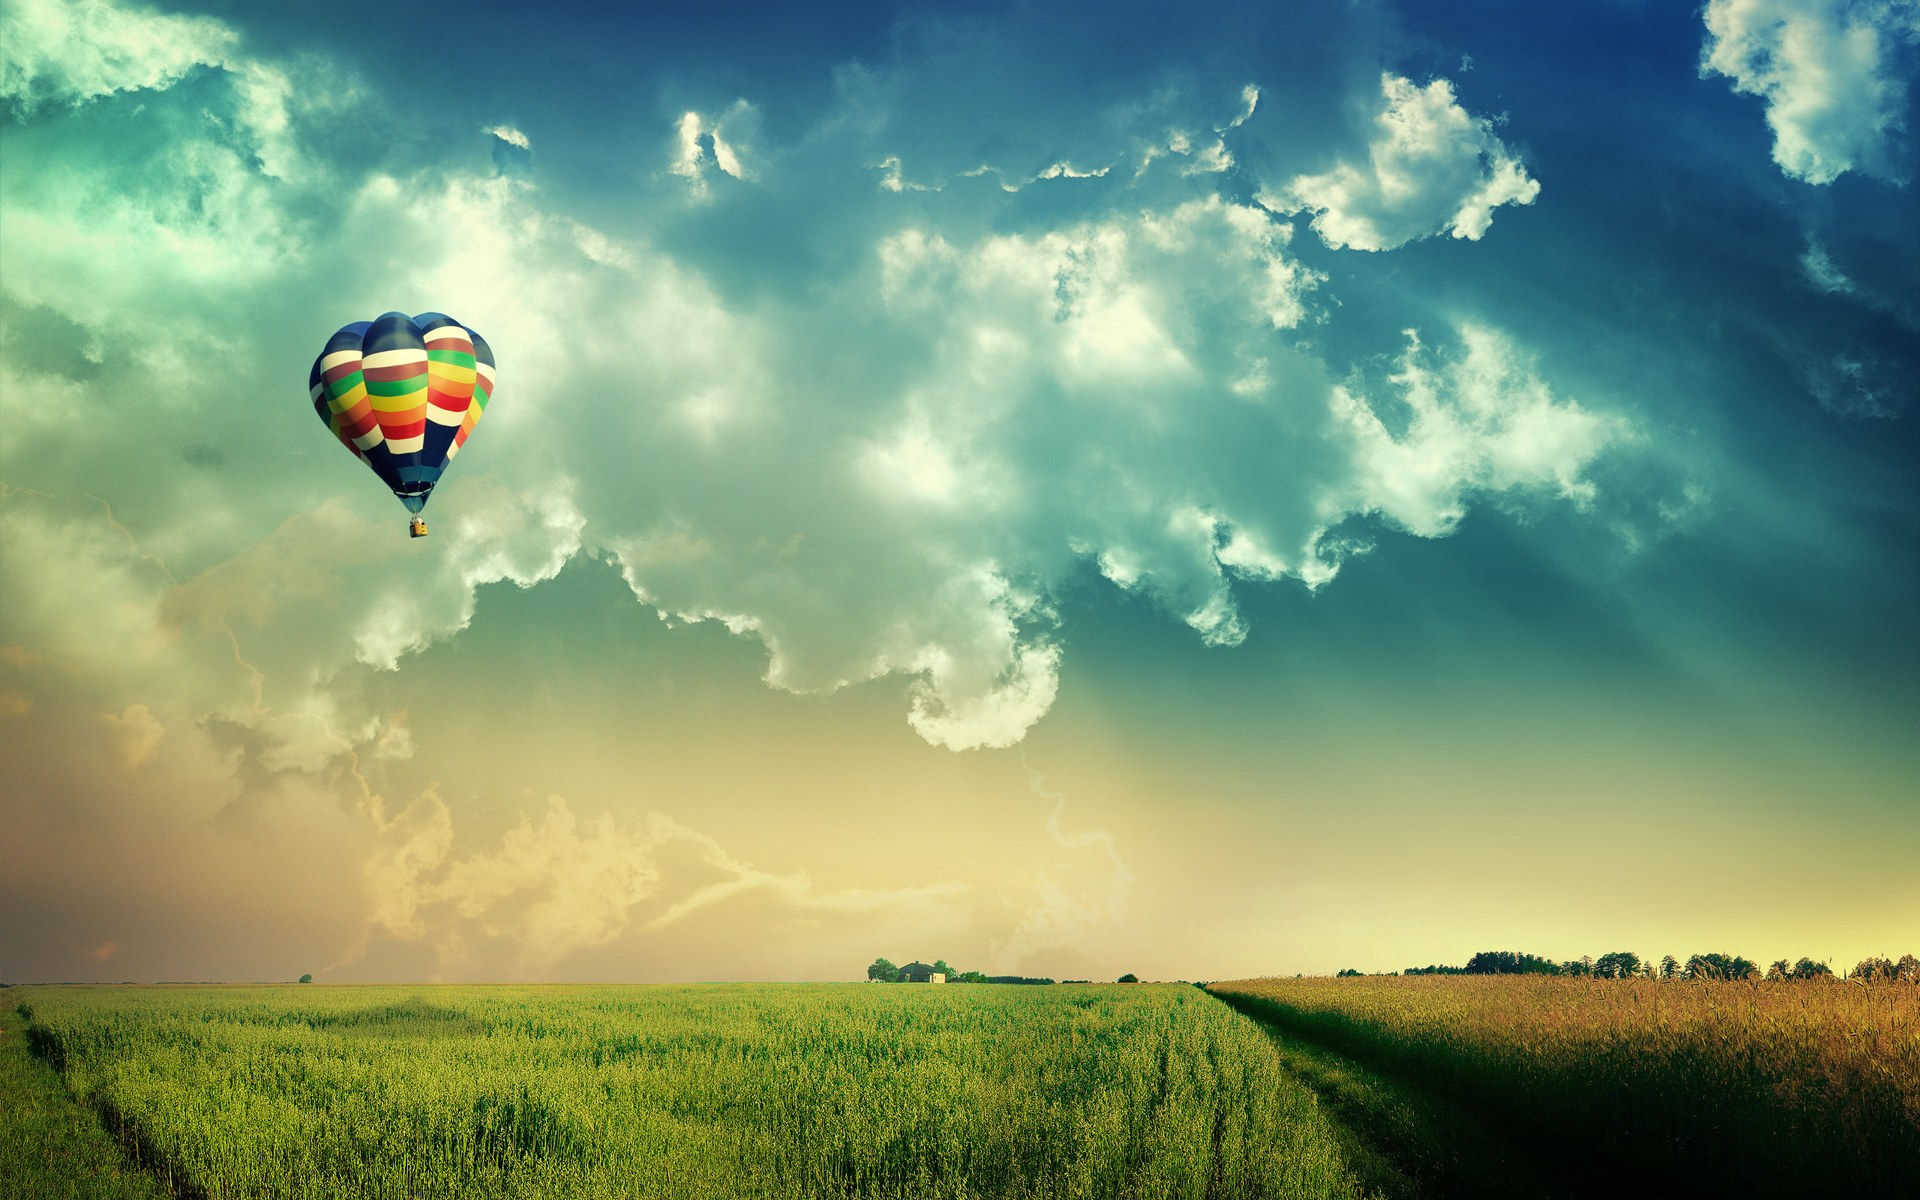 A colorful hot air balloon in the sky represents possibility and the coming true of dreams.